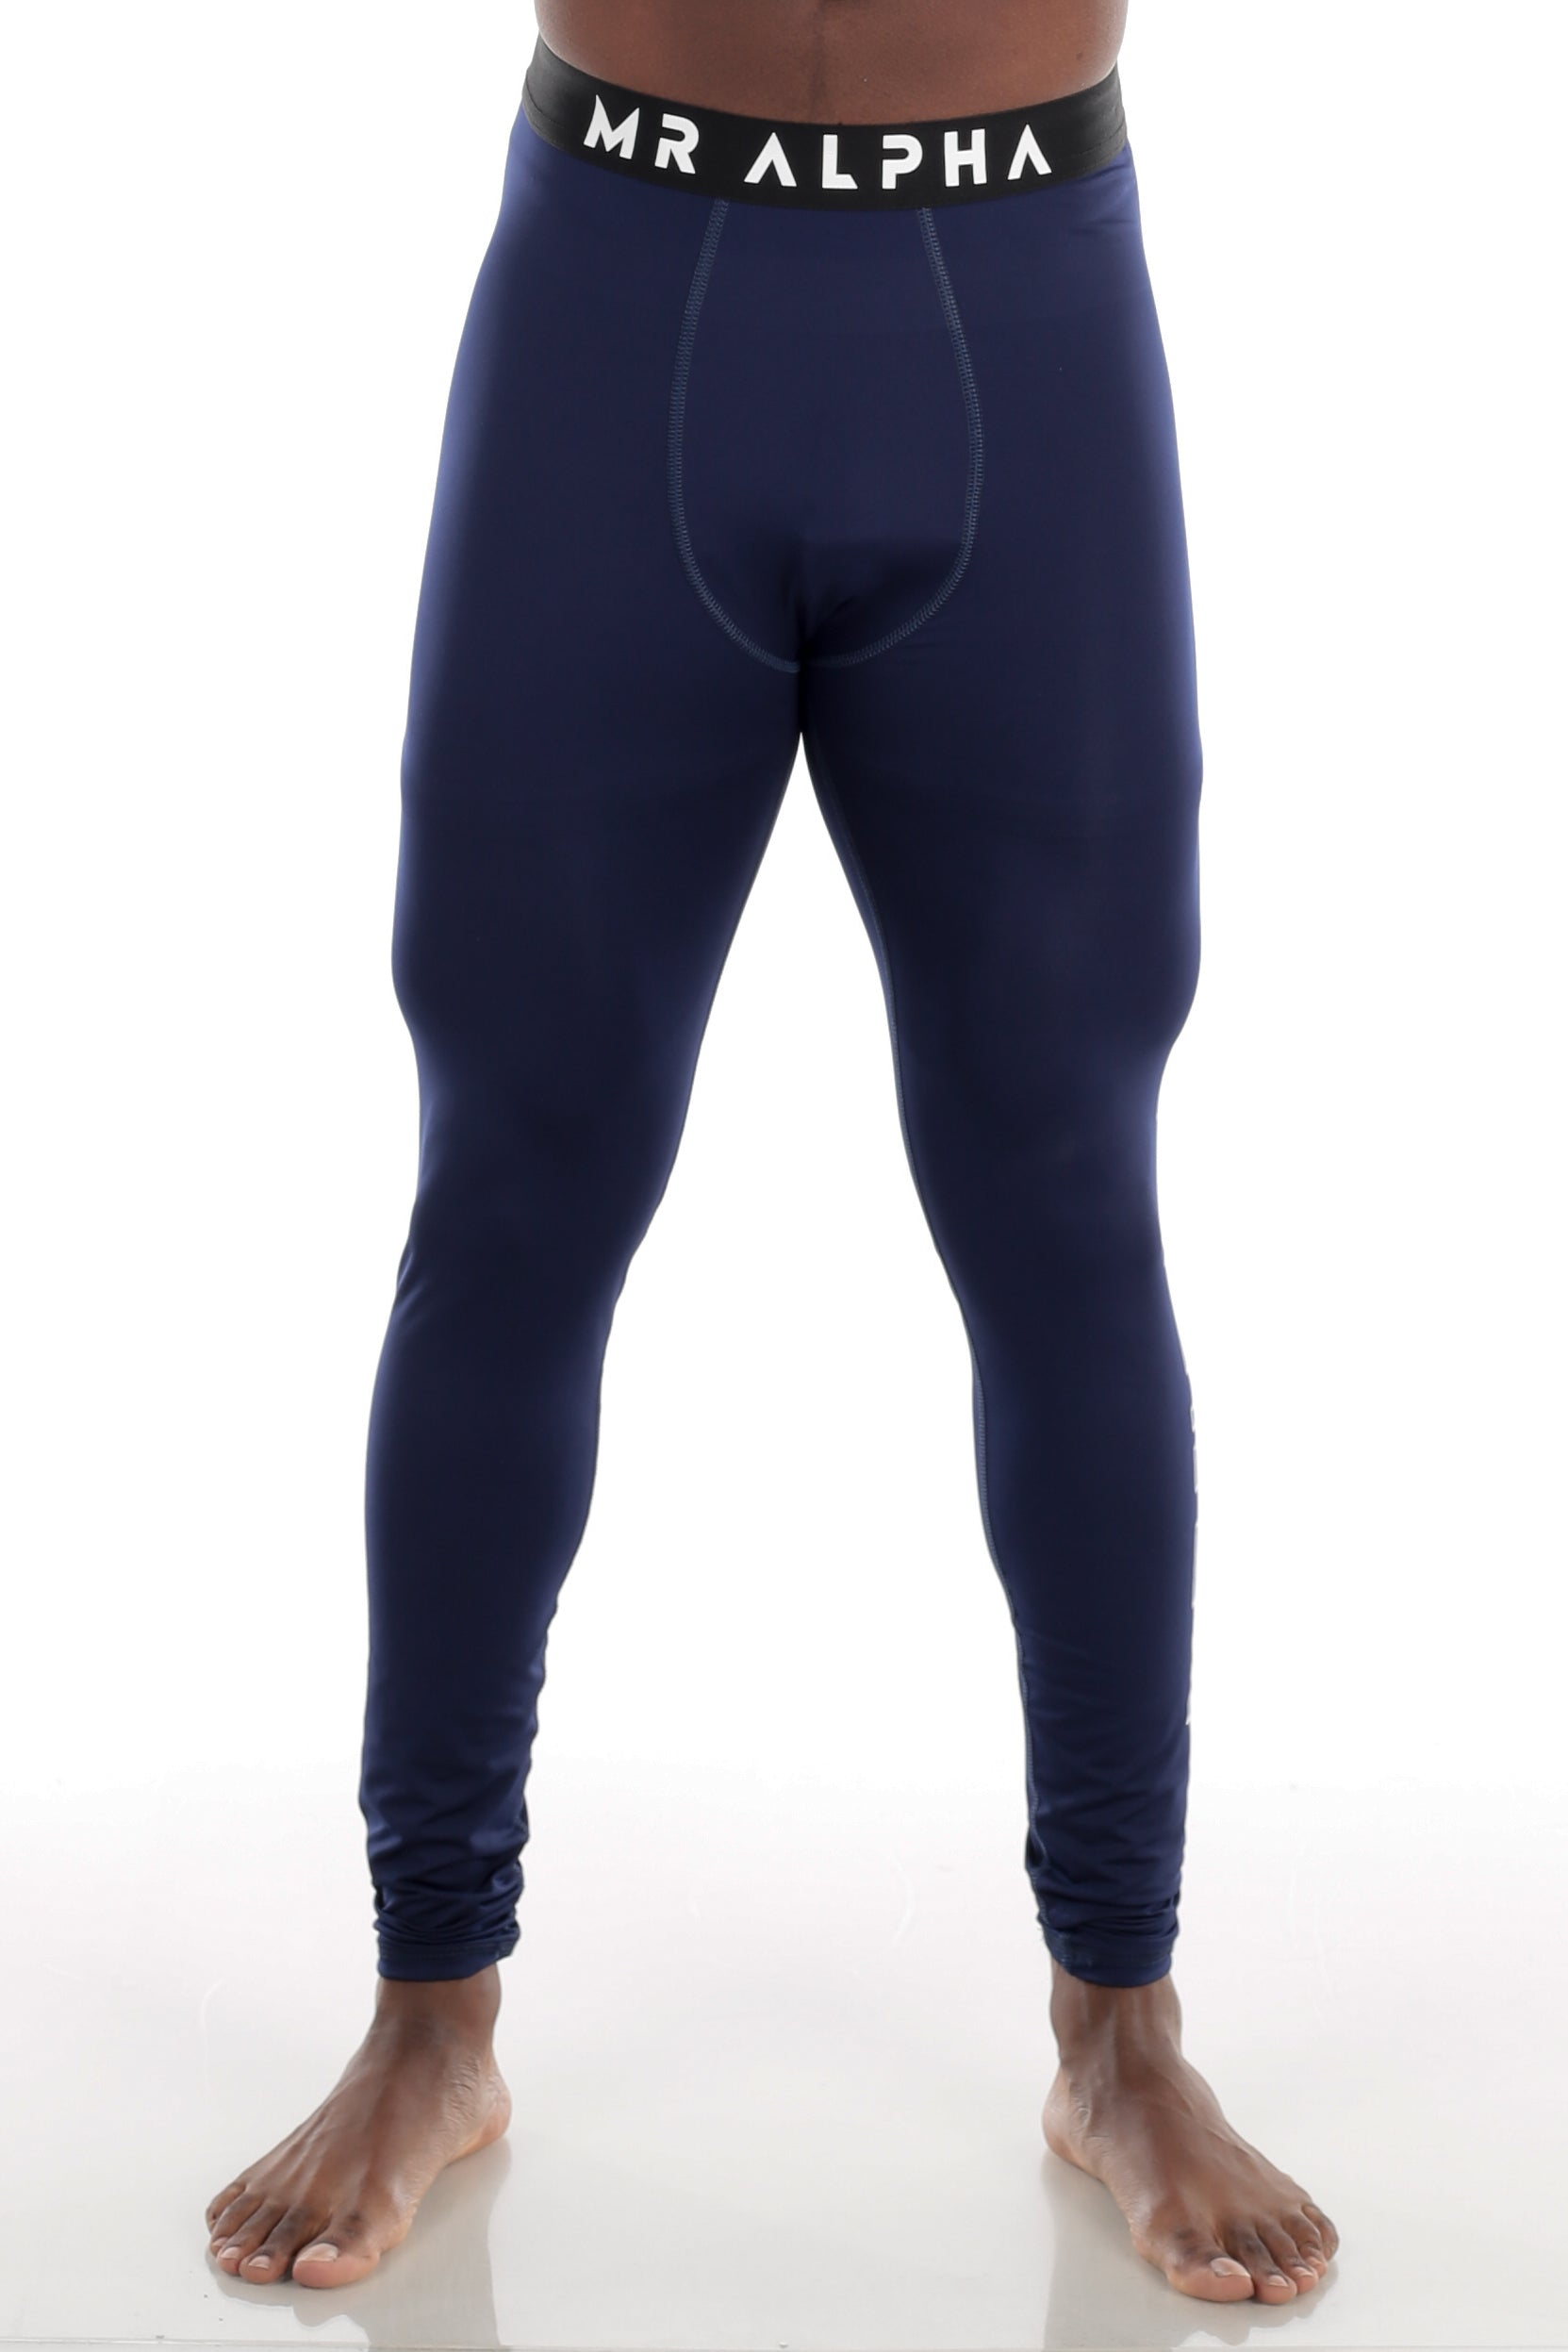 Ankle-Length Compression Tights Navy